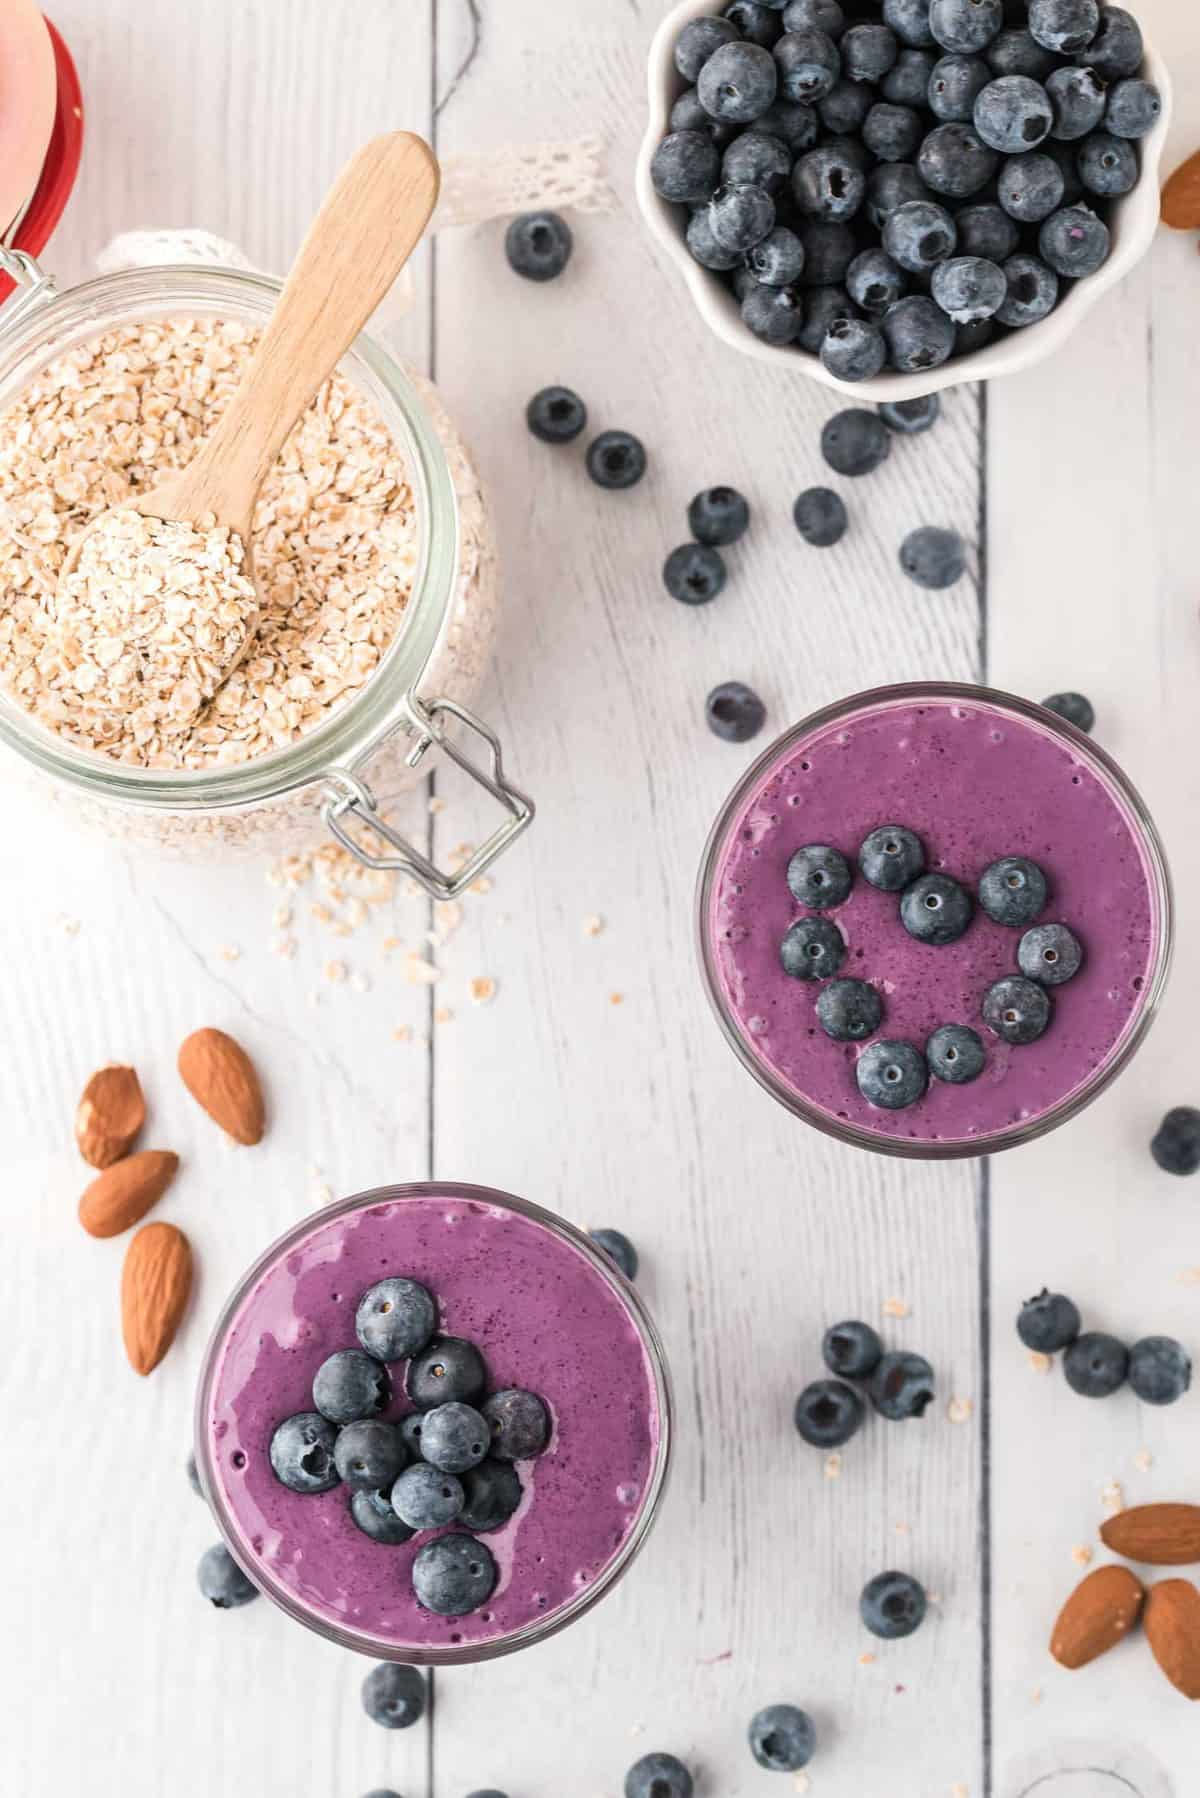 Overhead view of two blueberry topped smoothies, surrounded by a variety of ingredients.